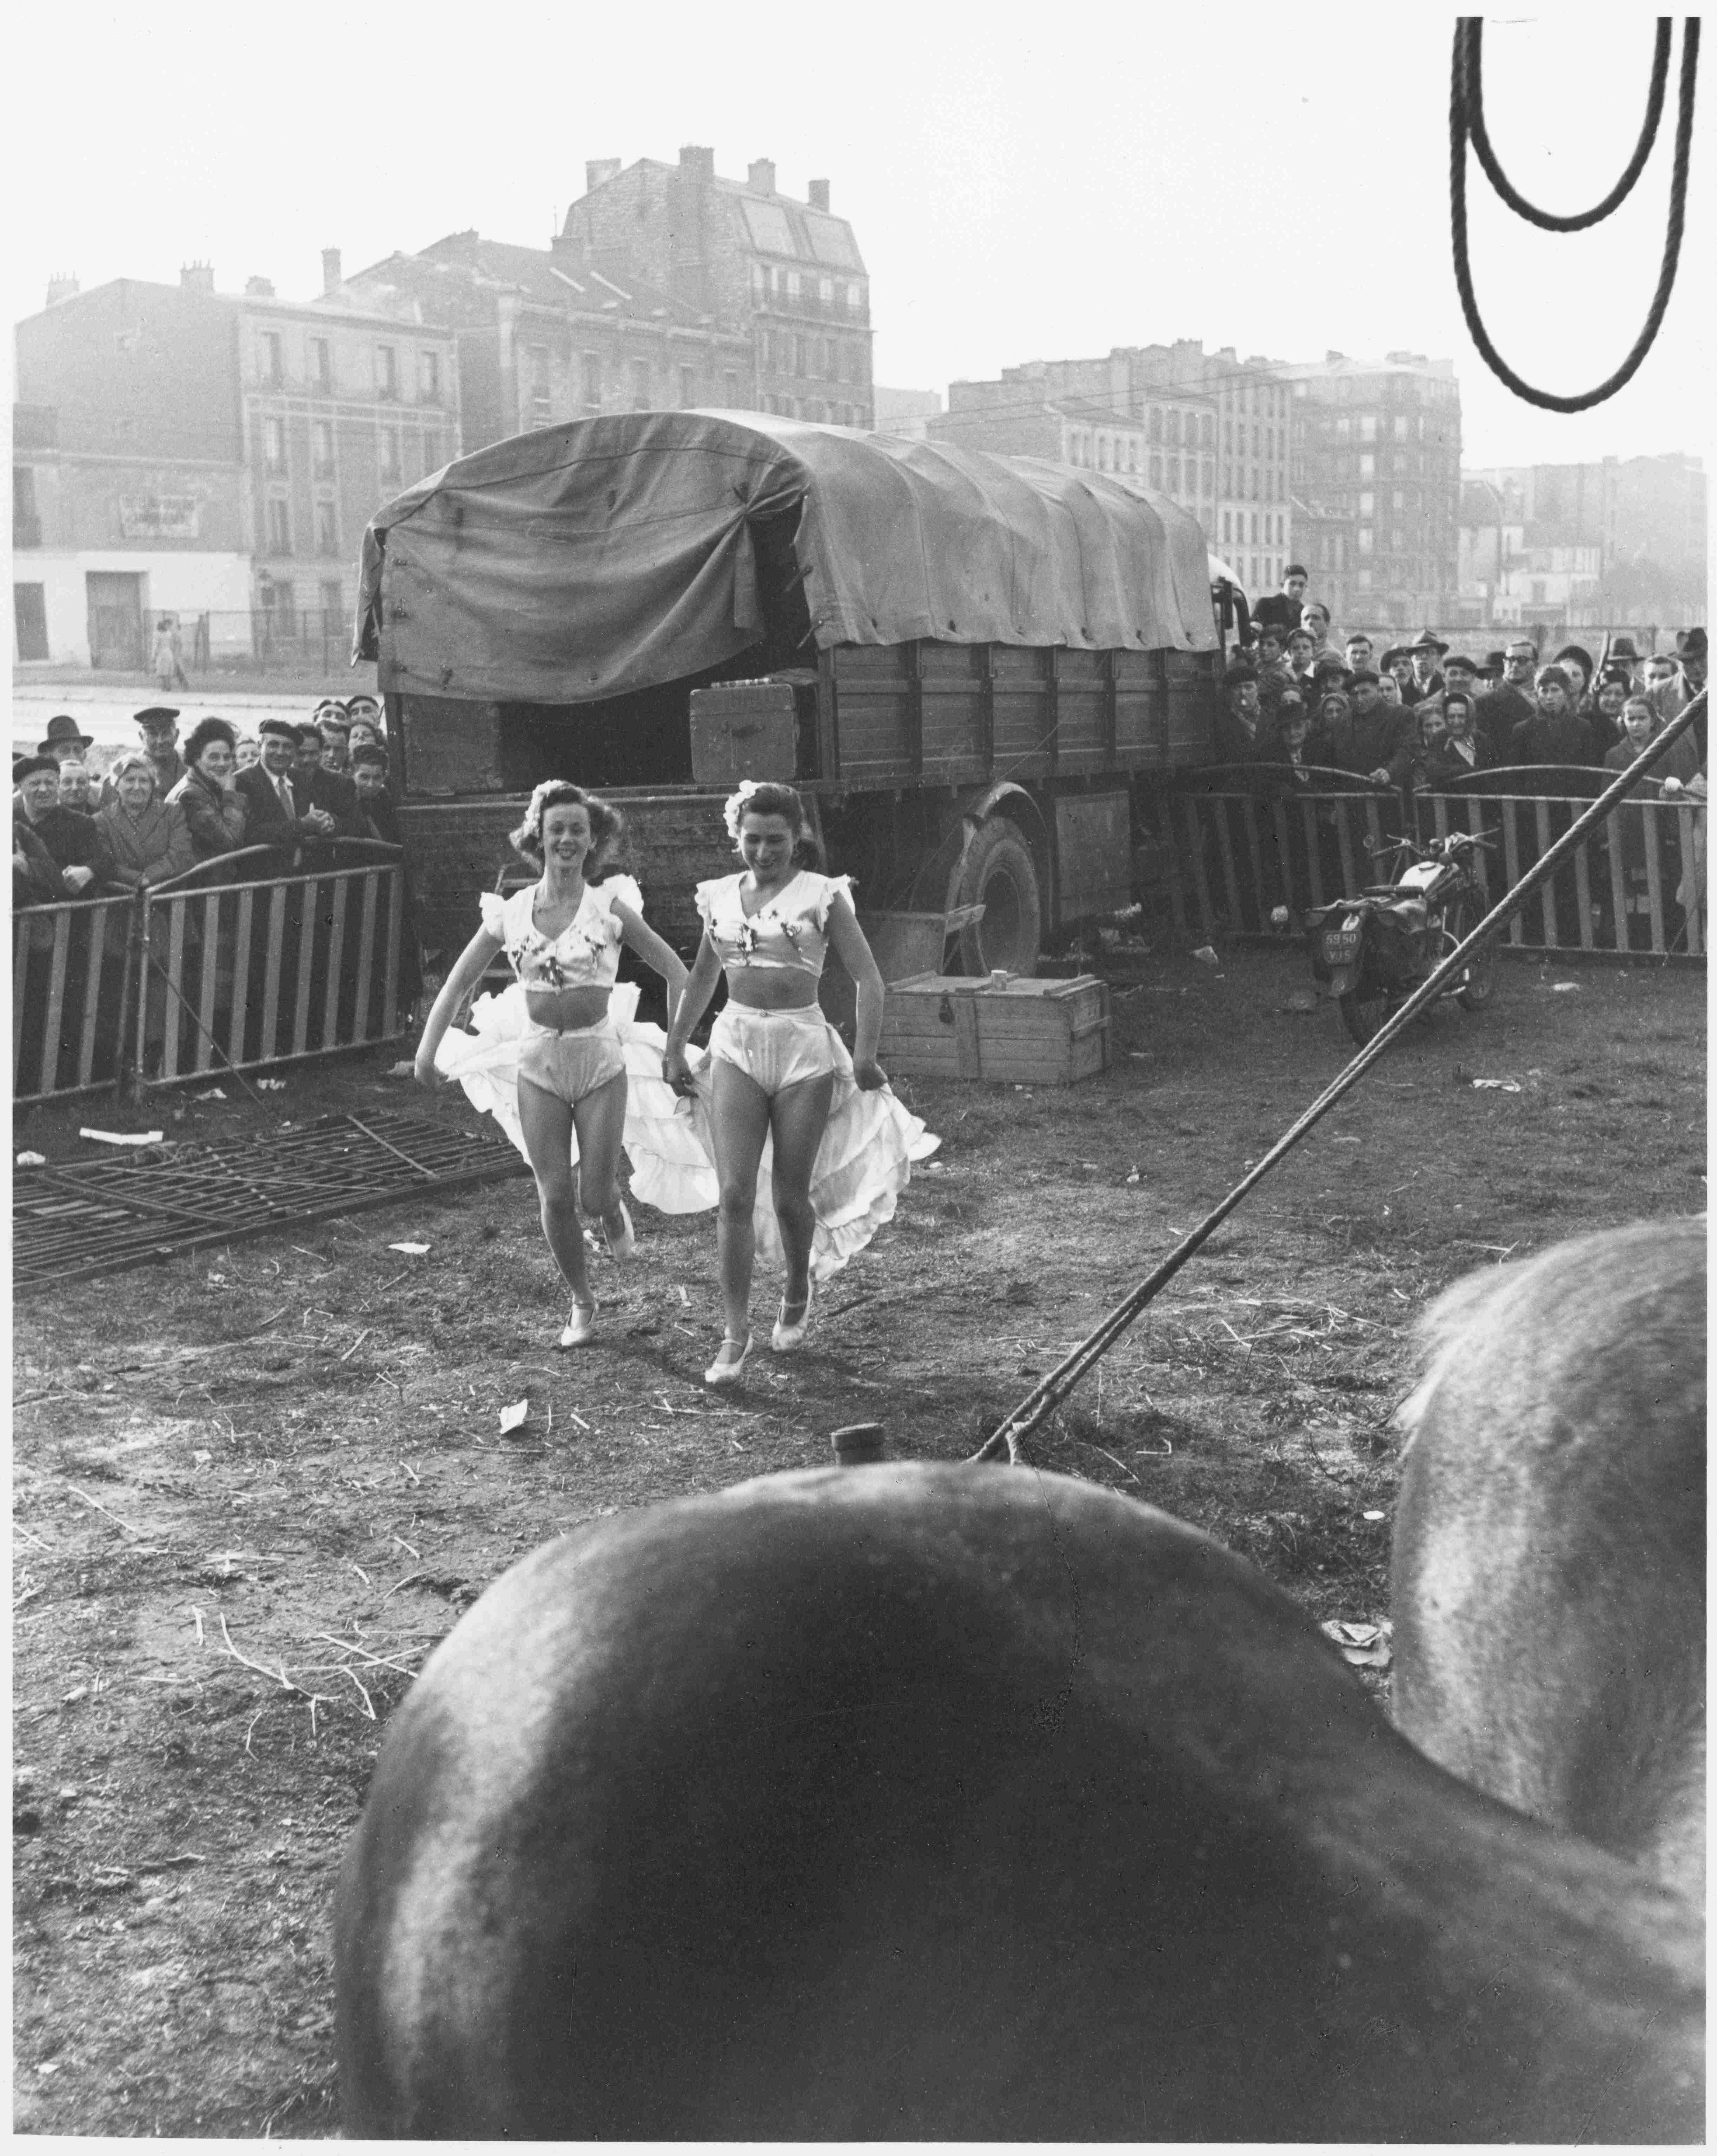 Willy Ronis Le Zoo Circus dAchille Zavatta Paris 1949